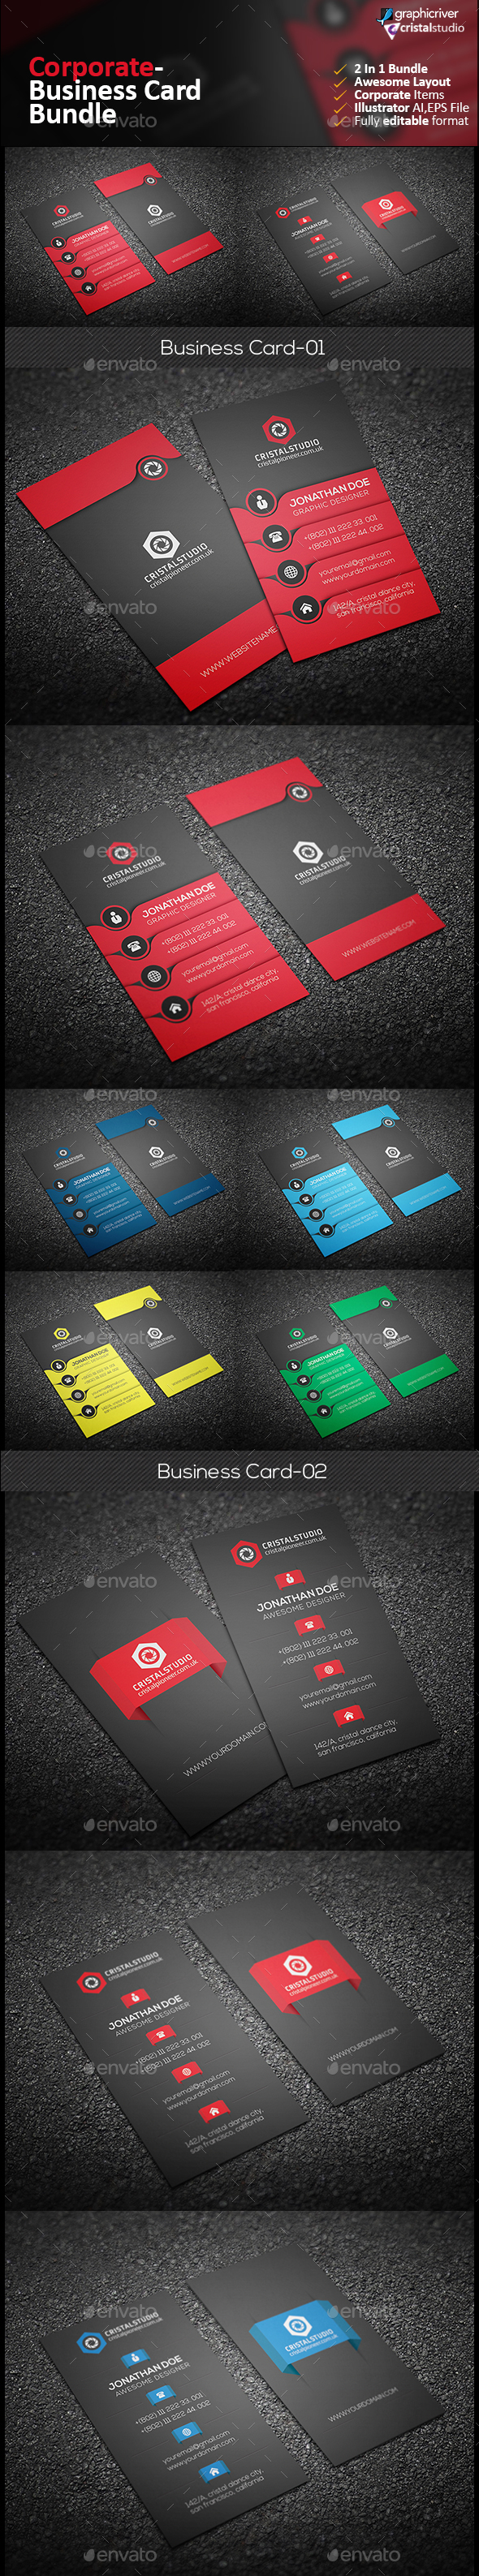 Corporate Business Card Bundle 2 in 1 - Corporate Business Cards